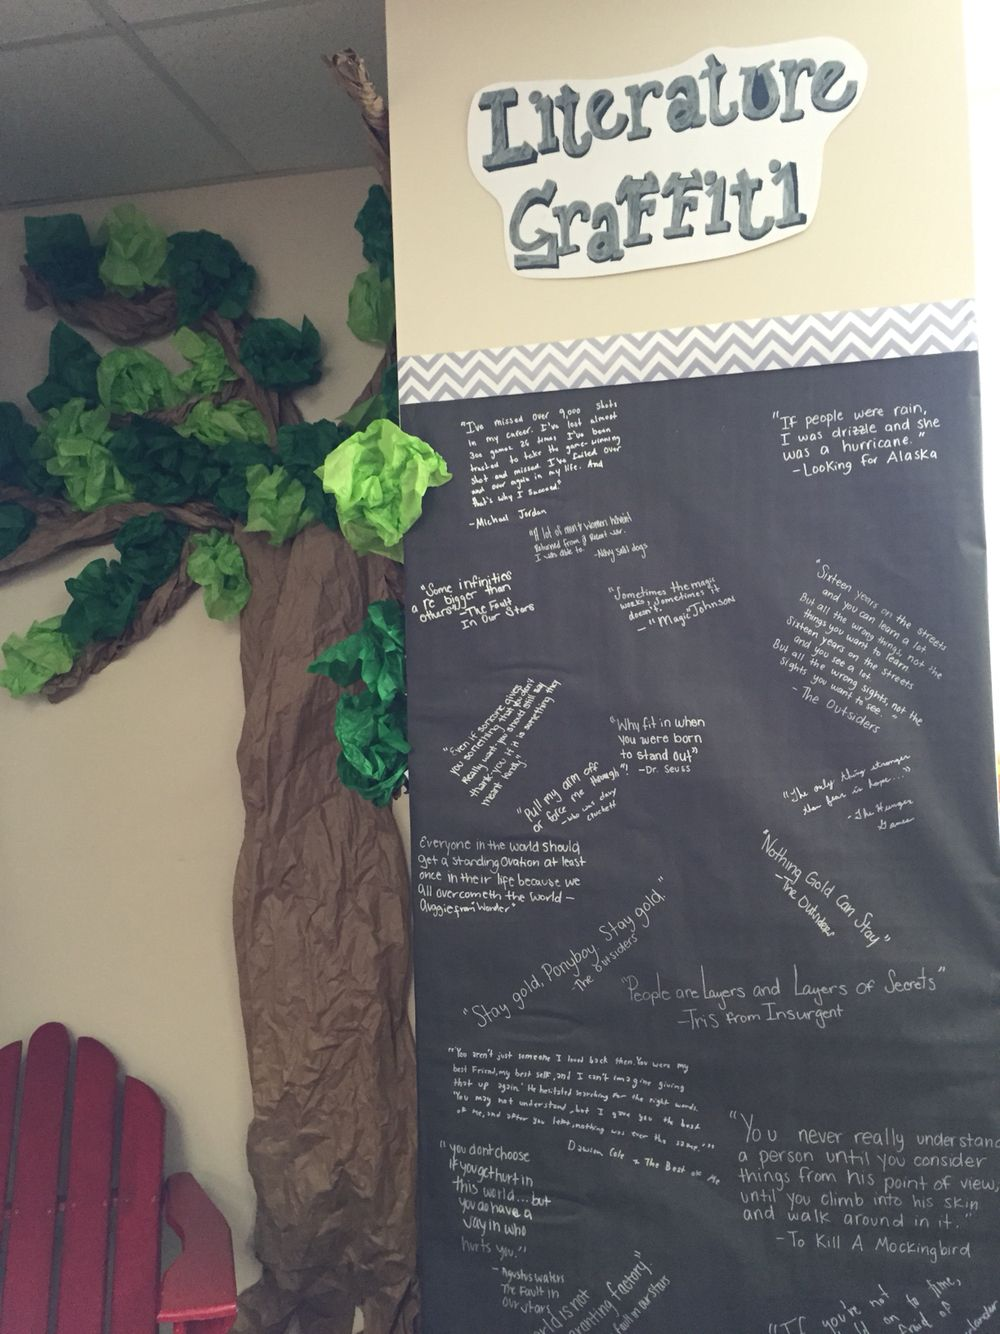 Graffiti wall rubric - Classroom Literature Graffiti Wall Have Students Find A Line Passage From A Book That